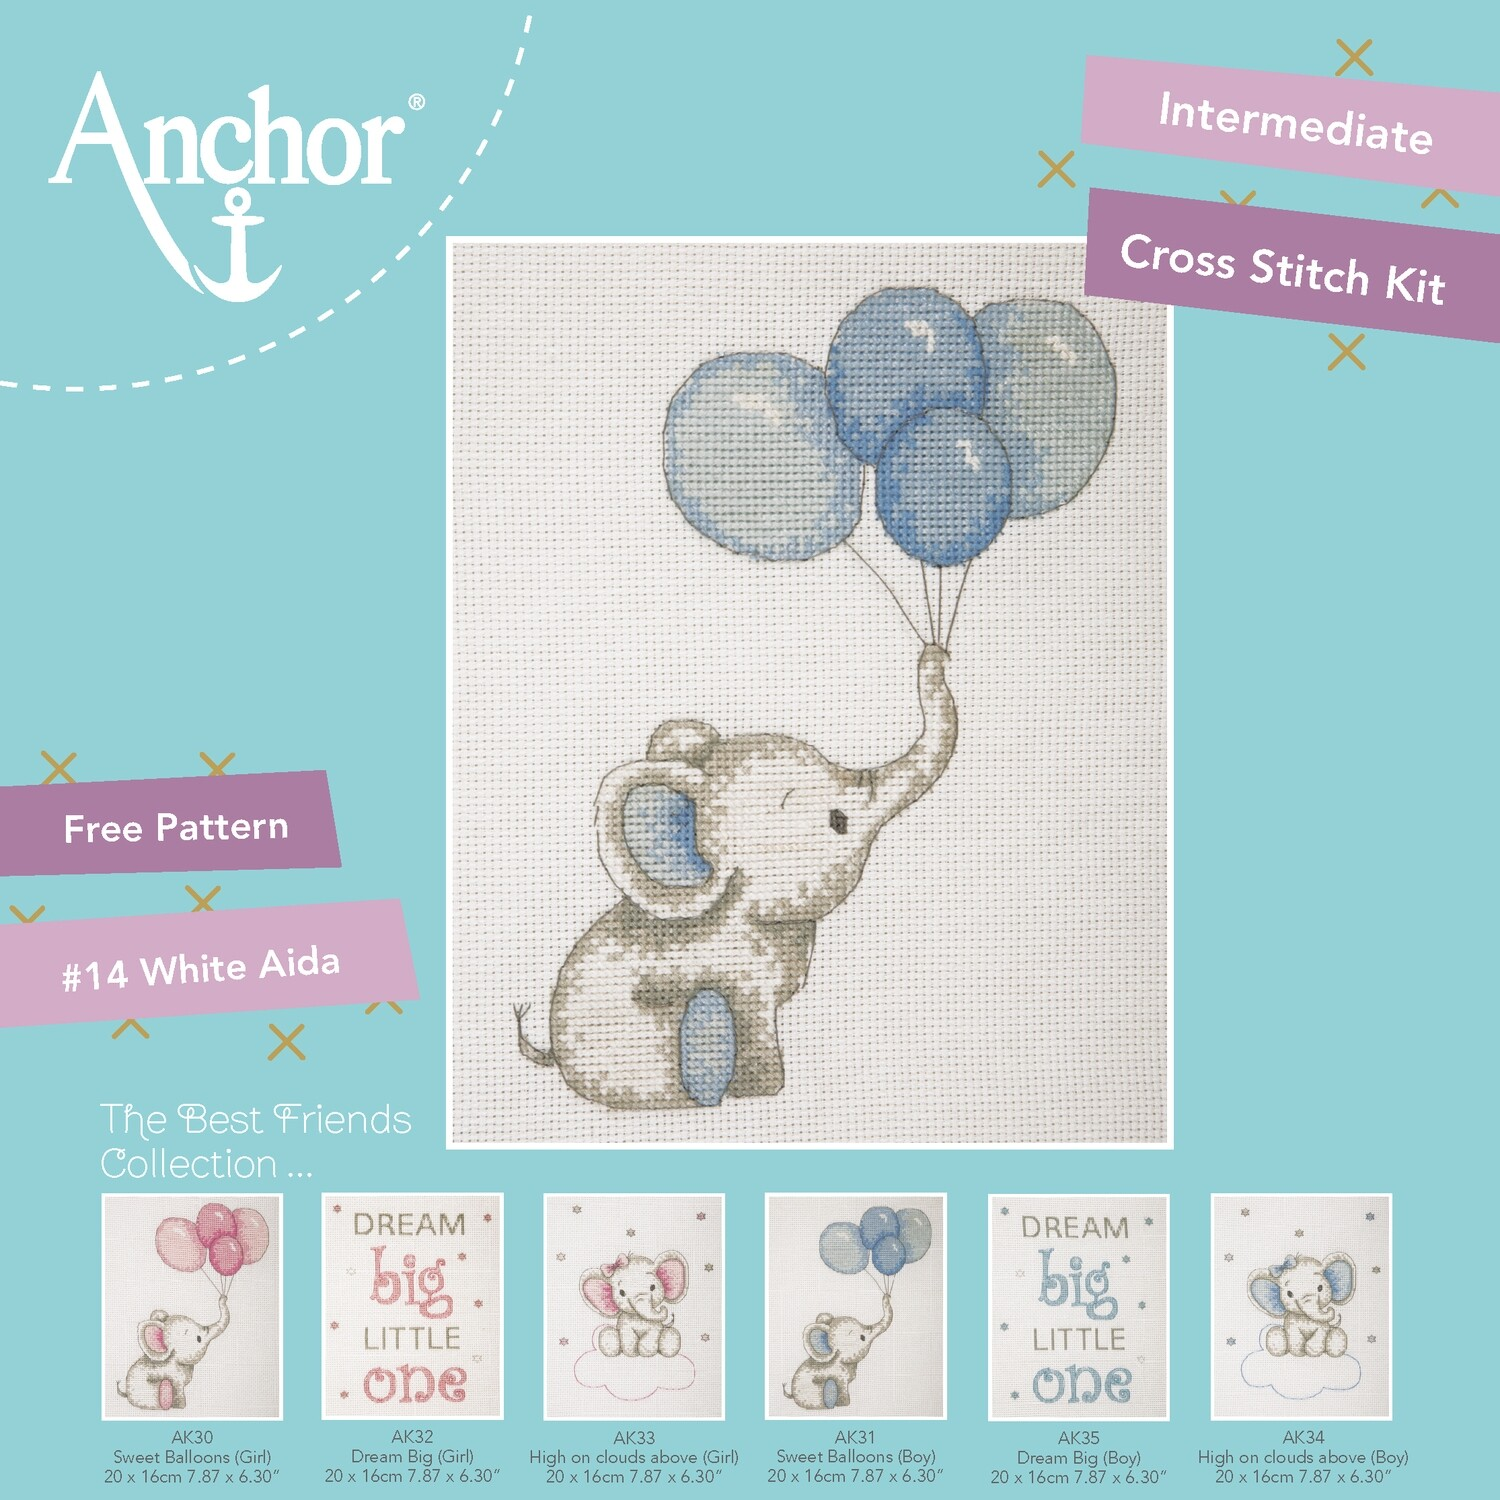 The Best Friends Collection - Sweet Balloons (Blue) 20x16cm